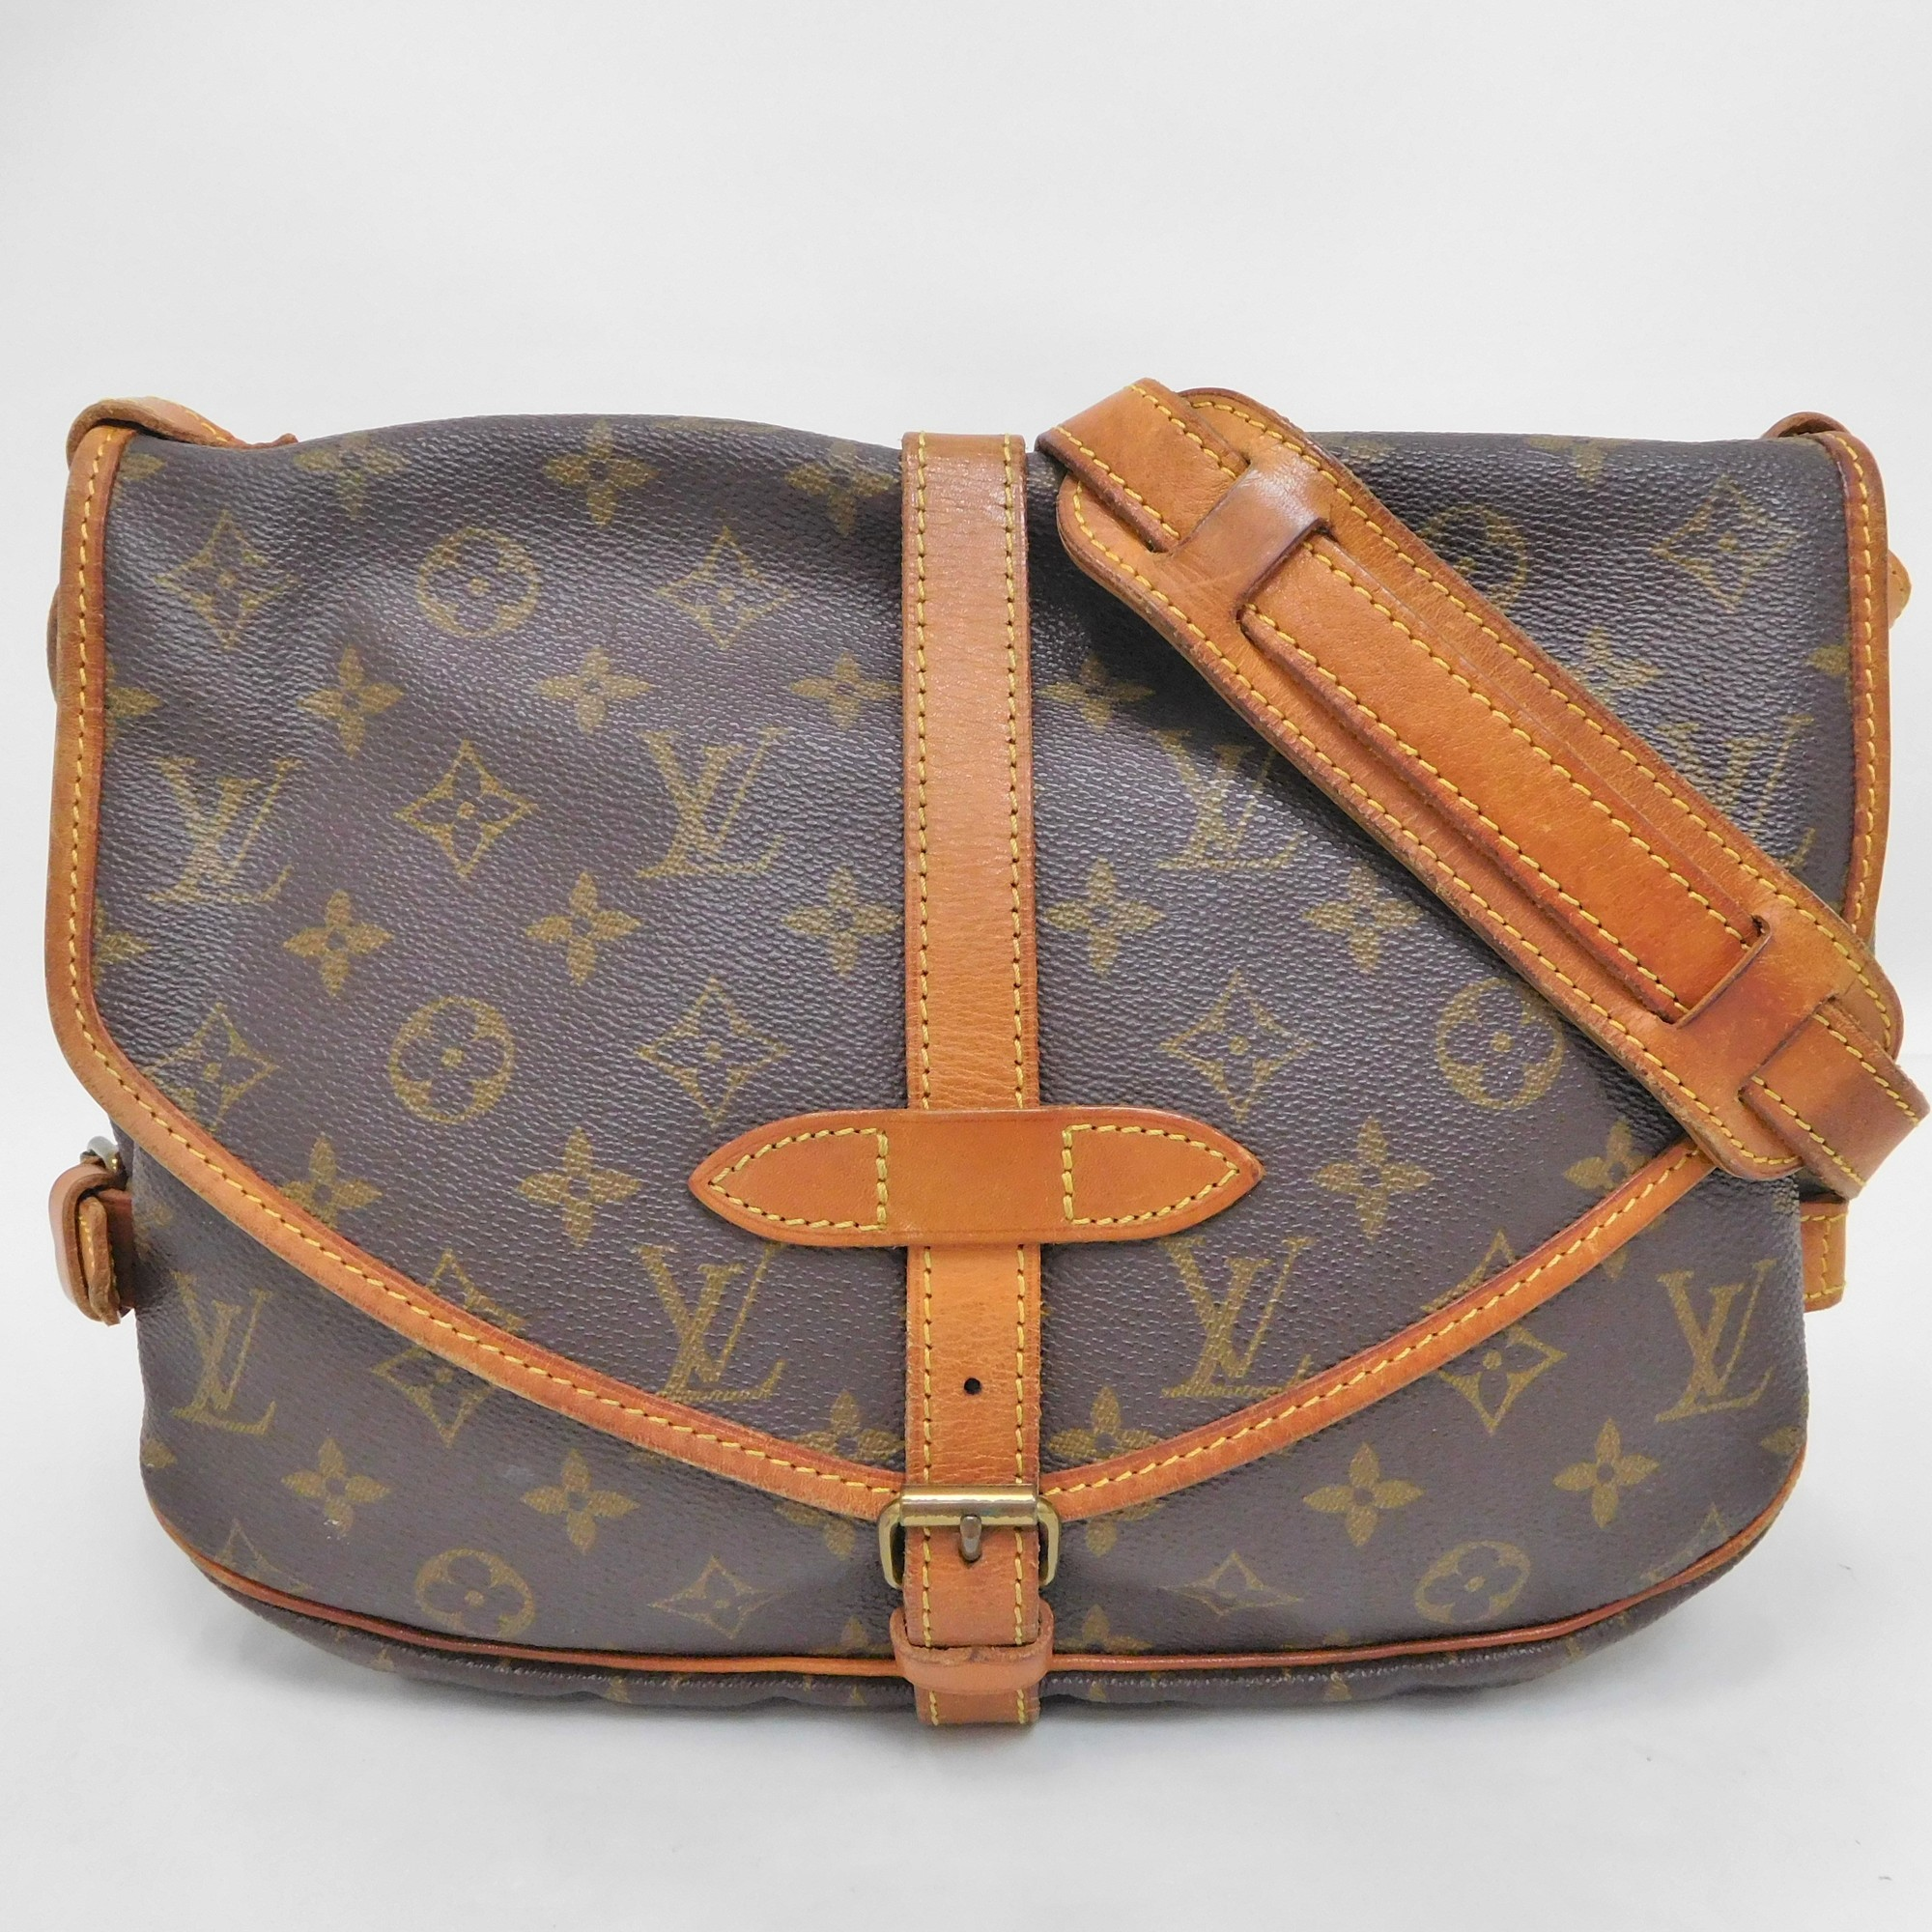 cb9780477f08 Auth Louis Vuitton Monogram Saumur 30 Messenger Bag